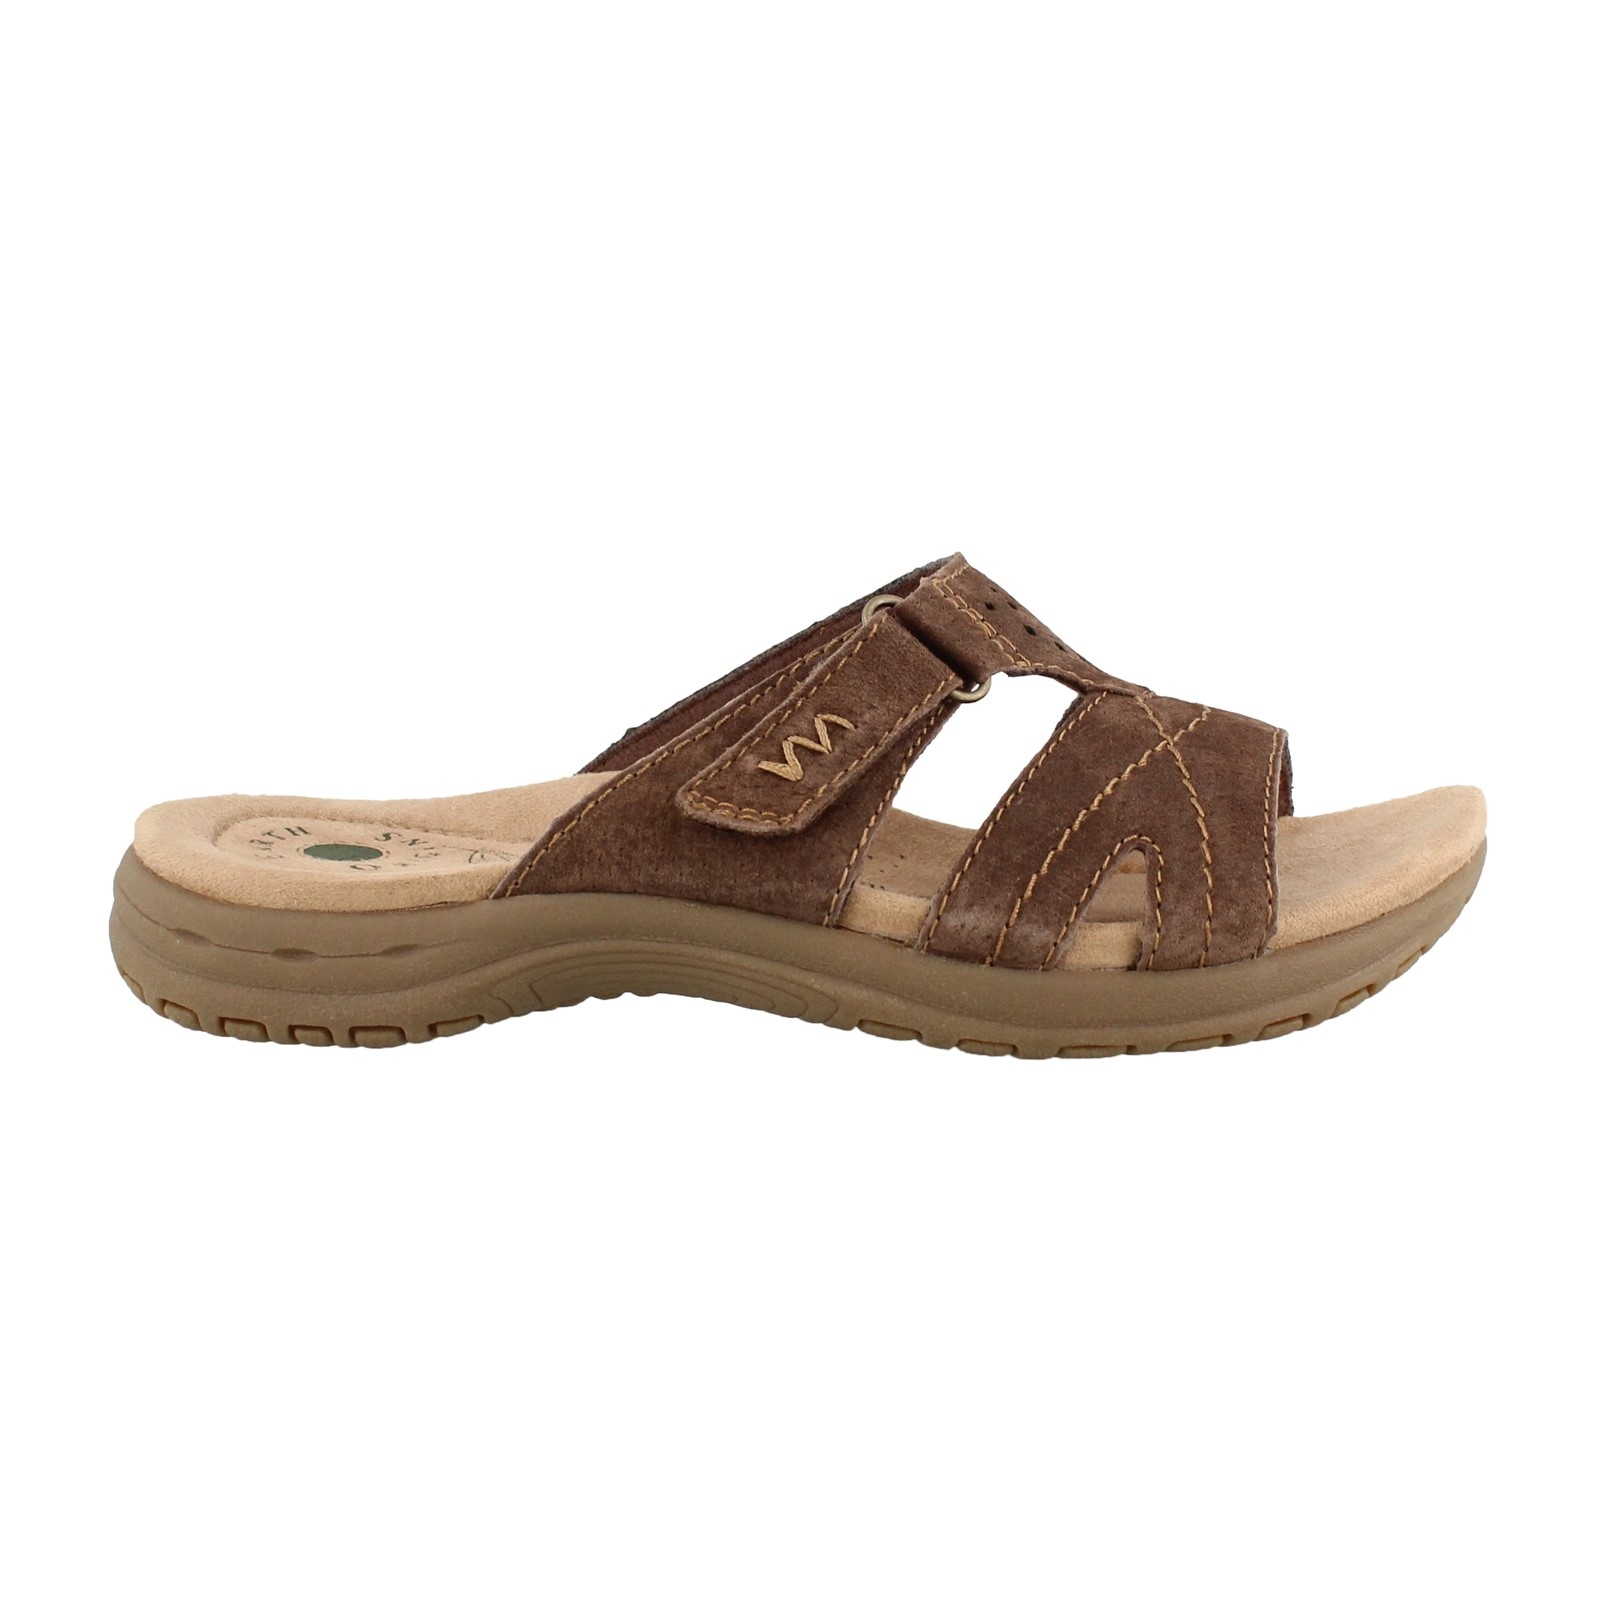 Women's Earth Origins, Selby Slide Sandal